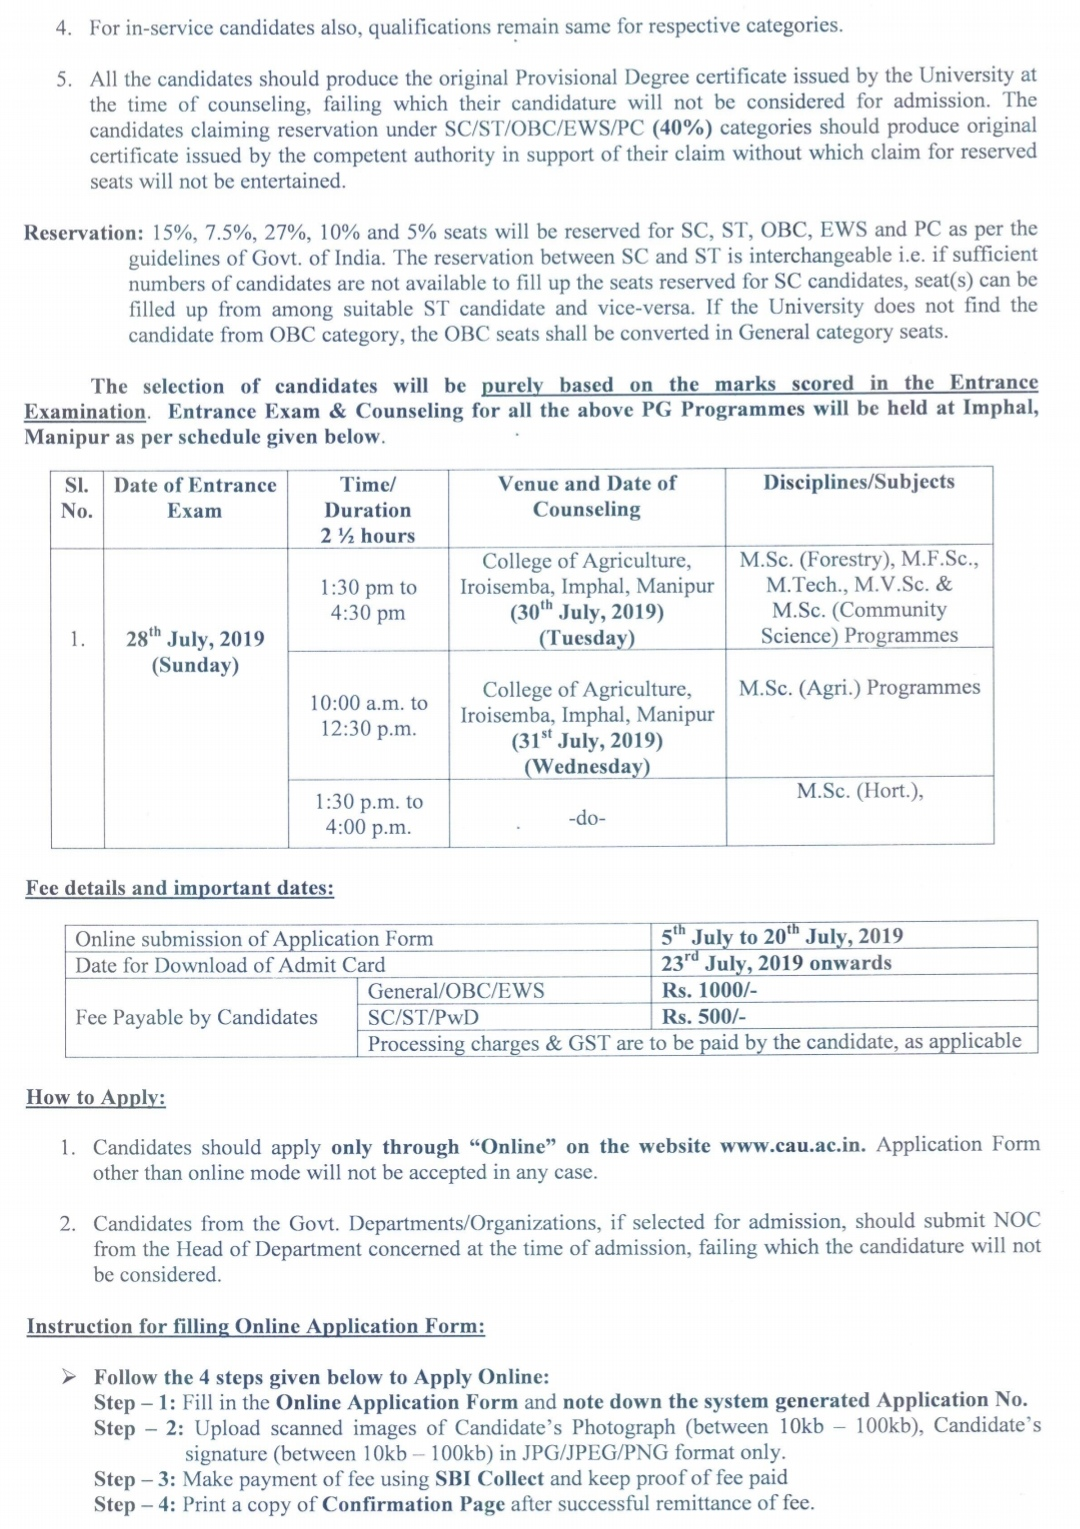 Central agriculture university imphal admission 2019 online application form and important dates, central agriculture university imphal online application form 2019,